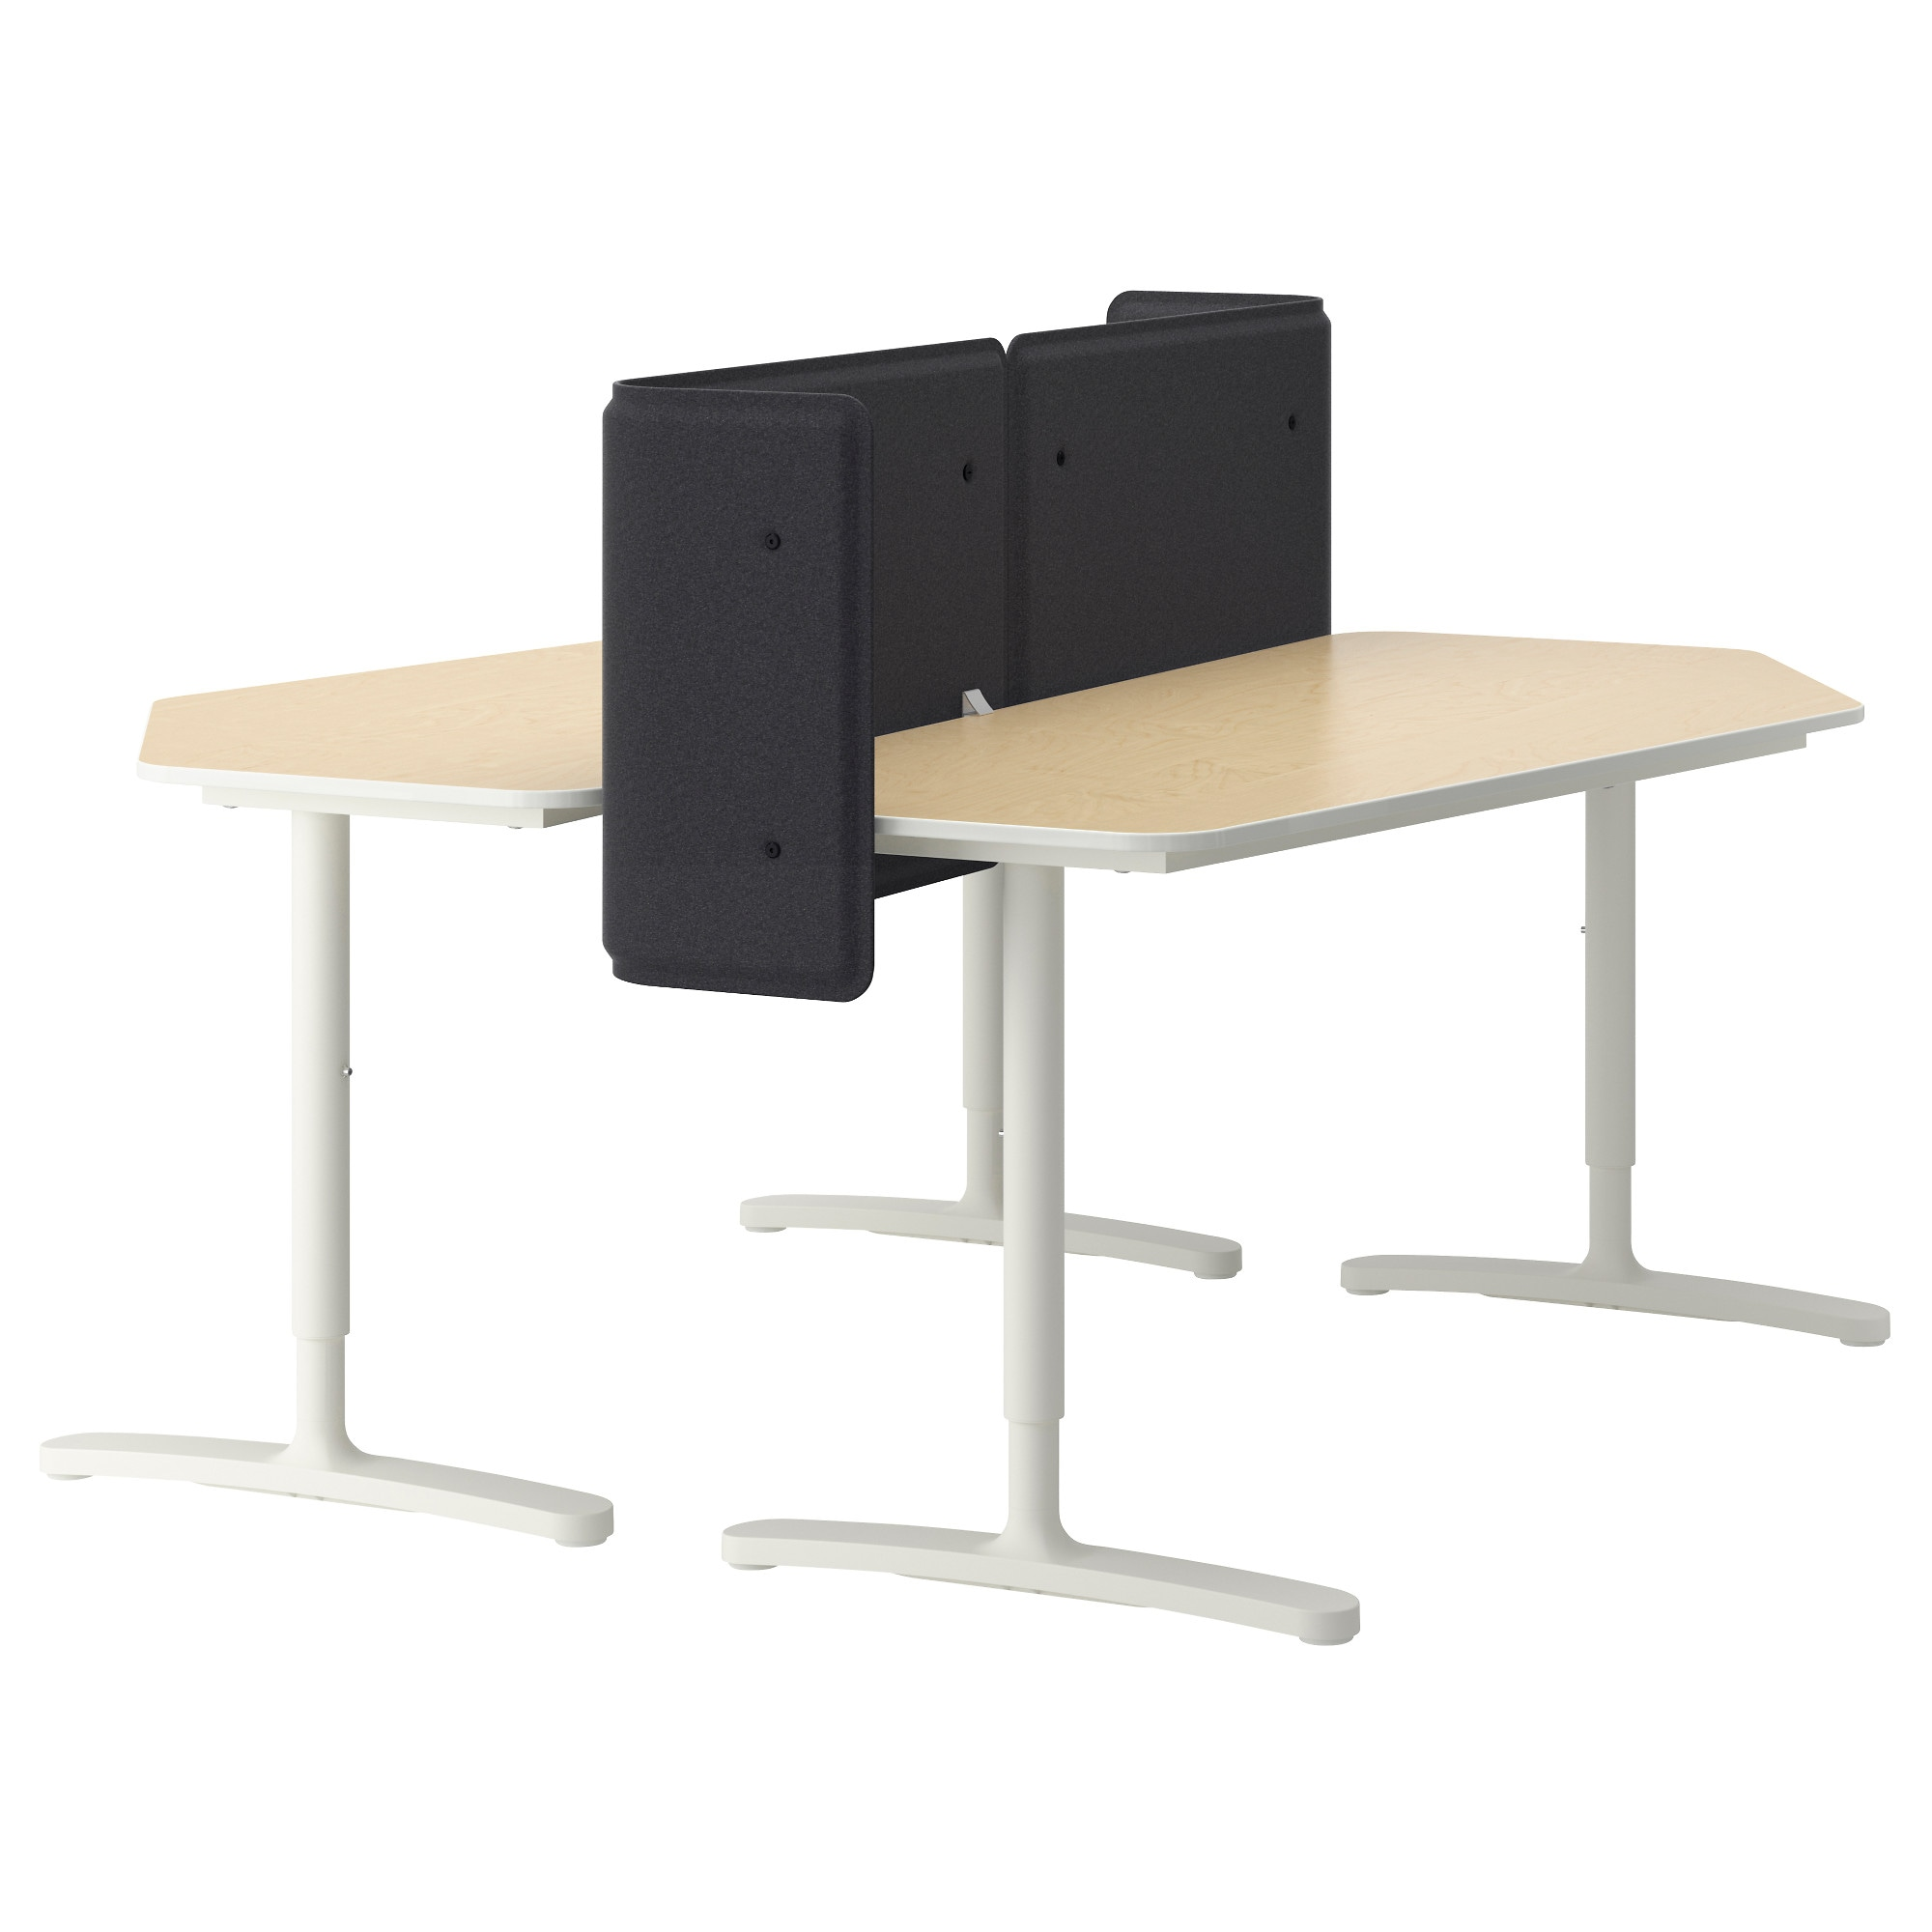 Eckschreibtisch ikea galant  BEKANT Desk with screen - white - IKEA